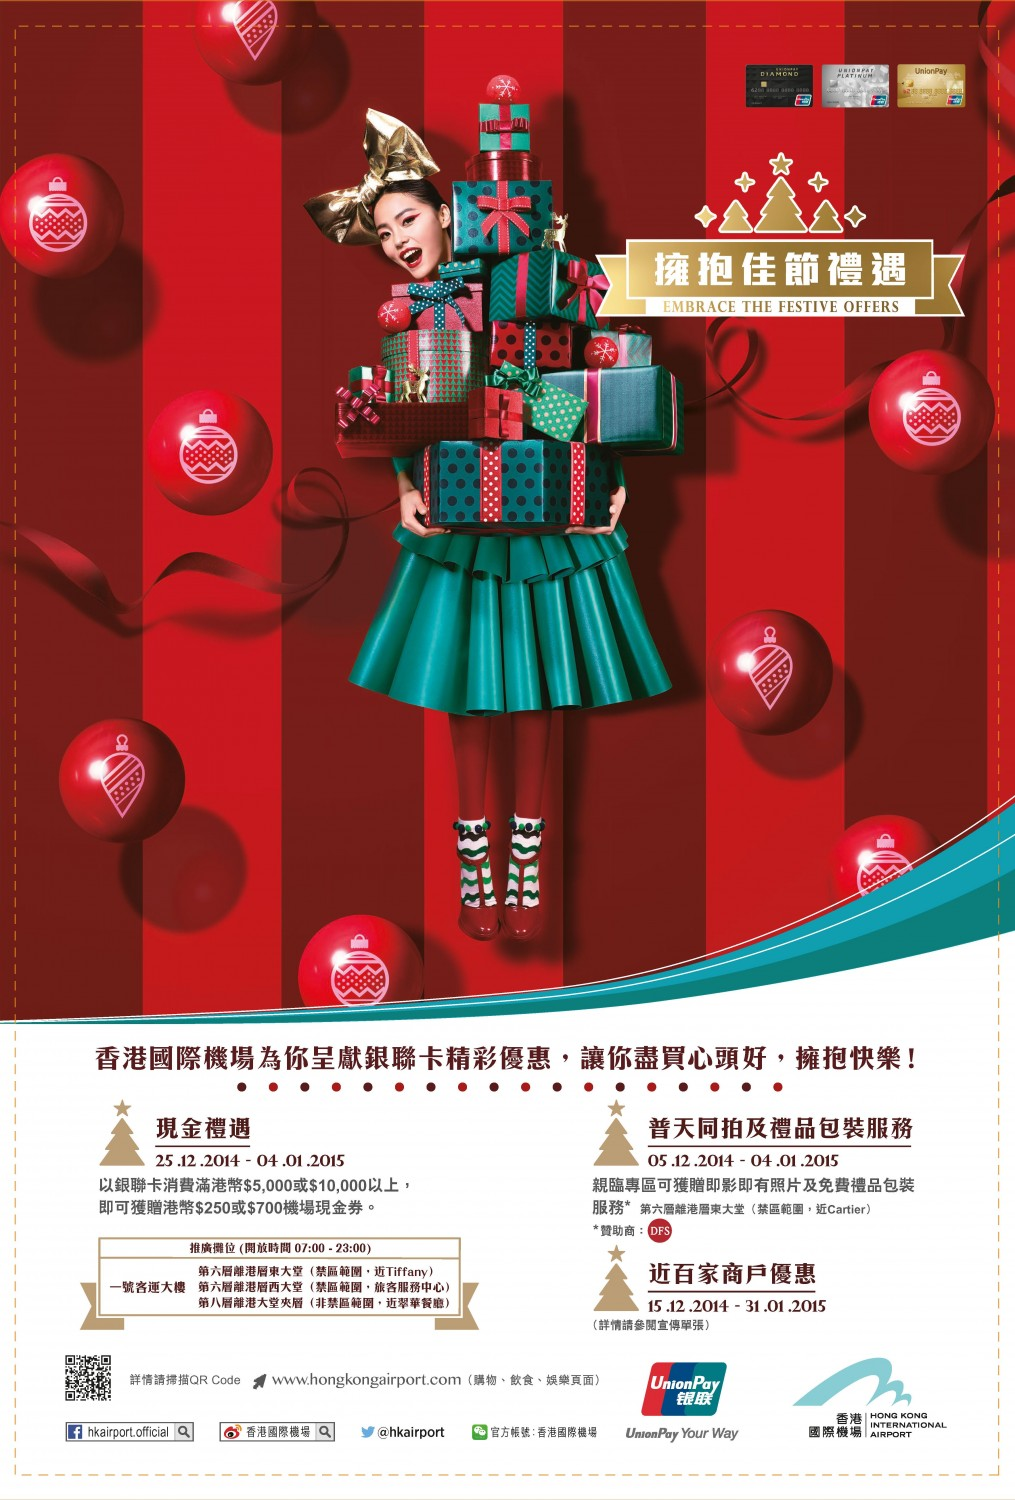 Hong Kong Airport Christmas Offer 2014